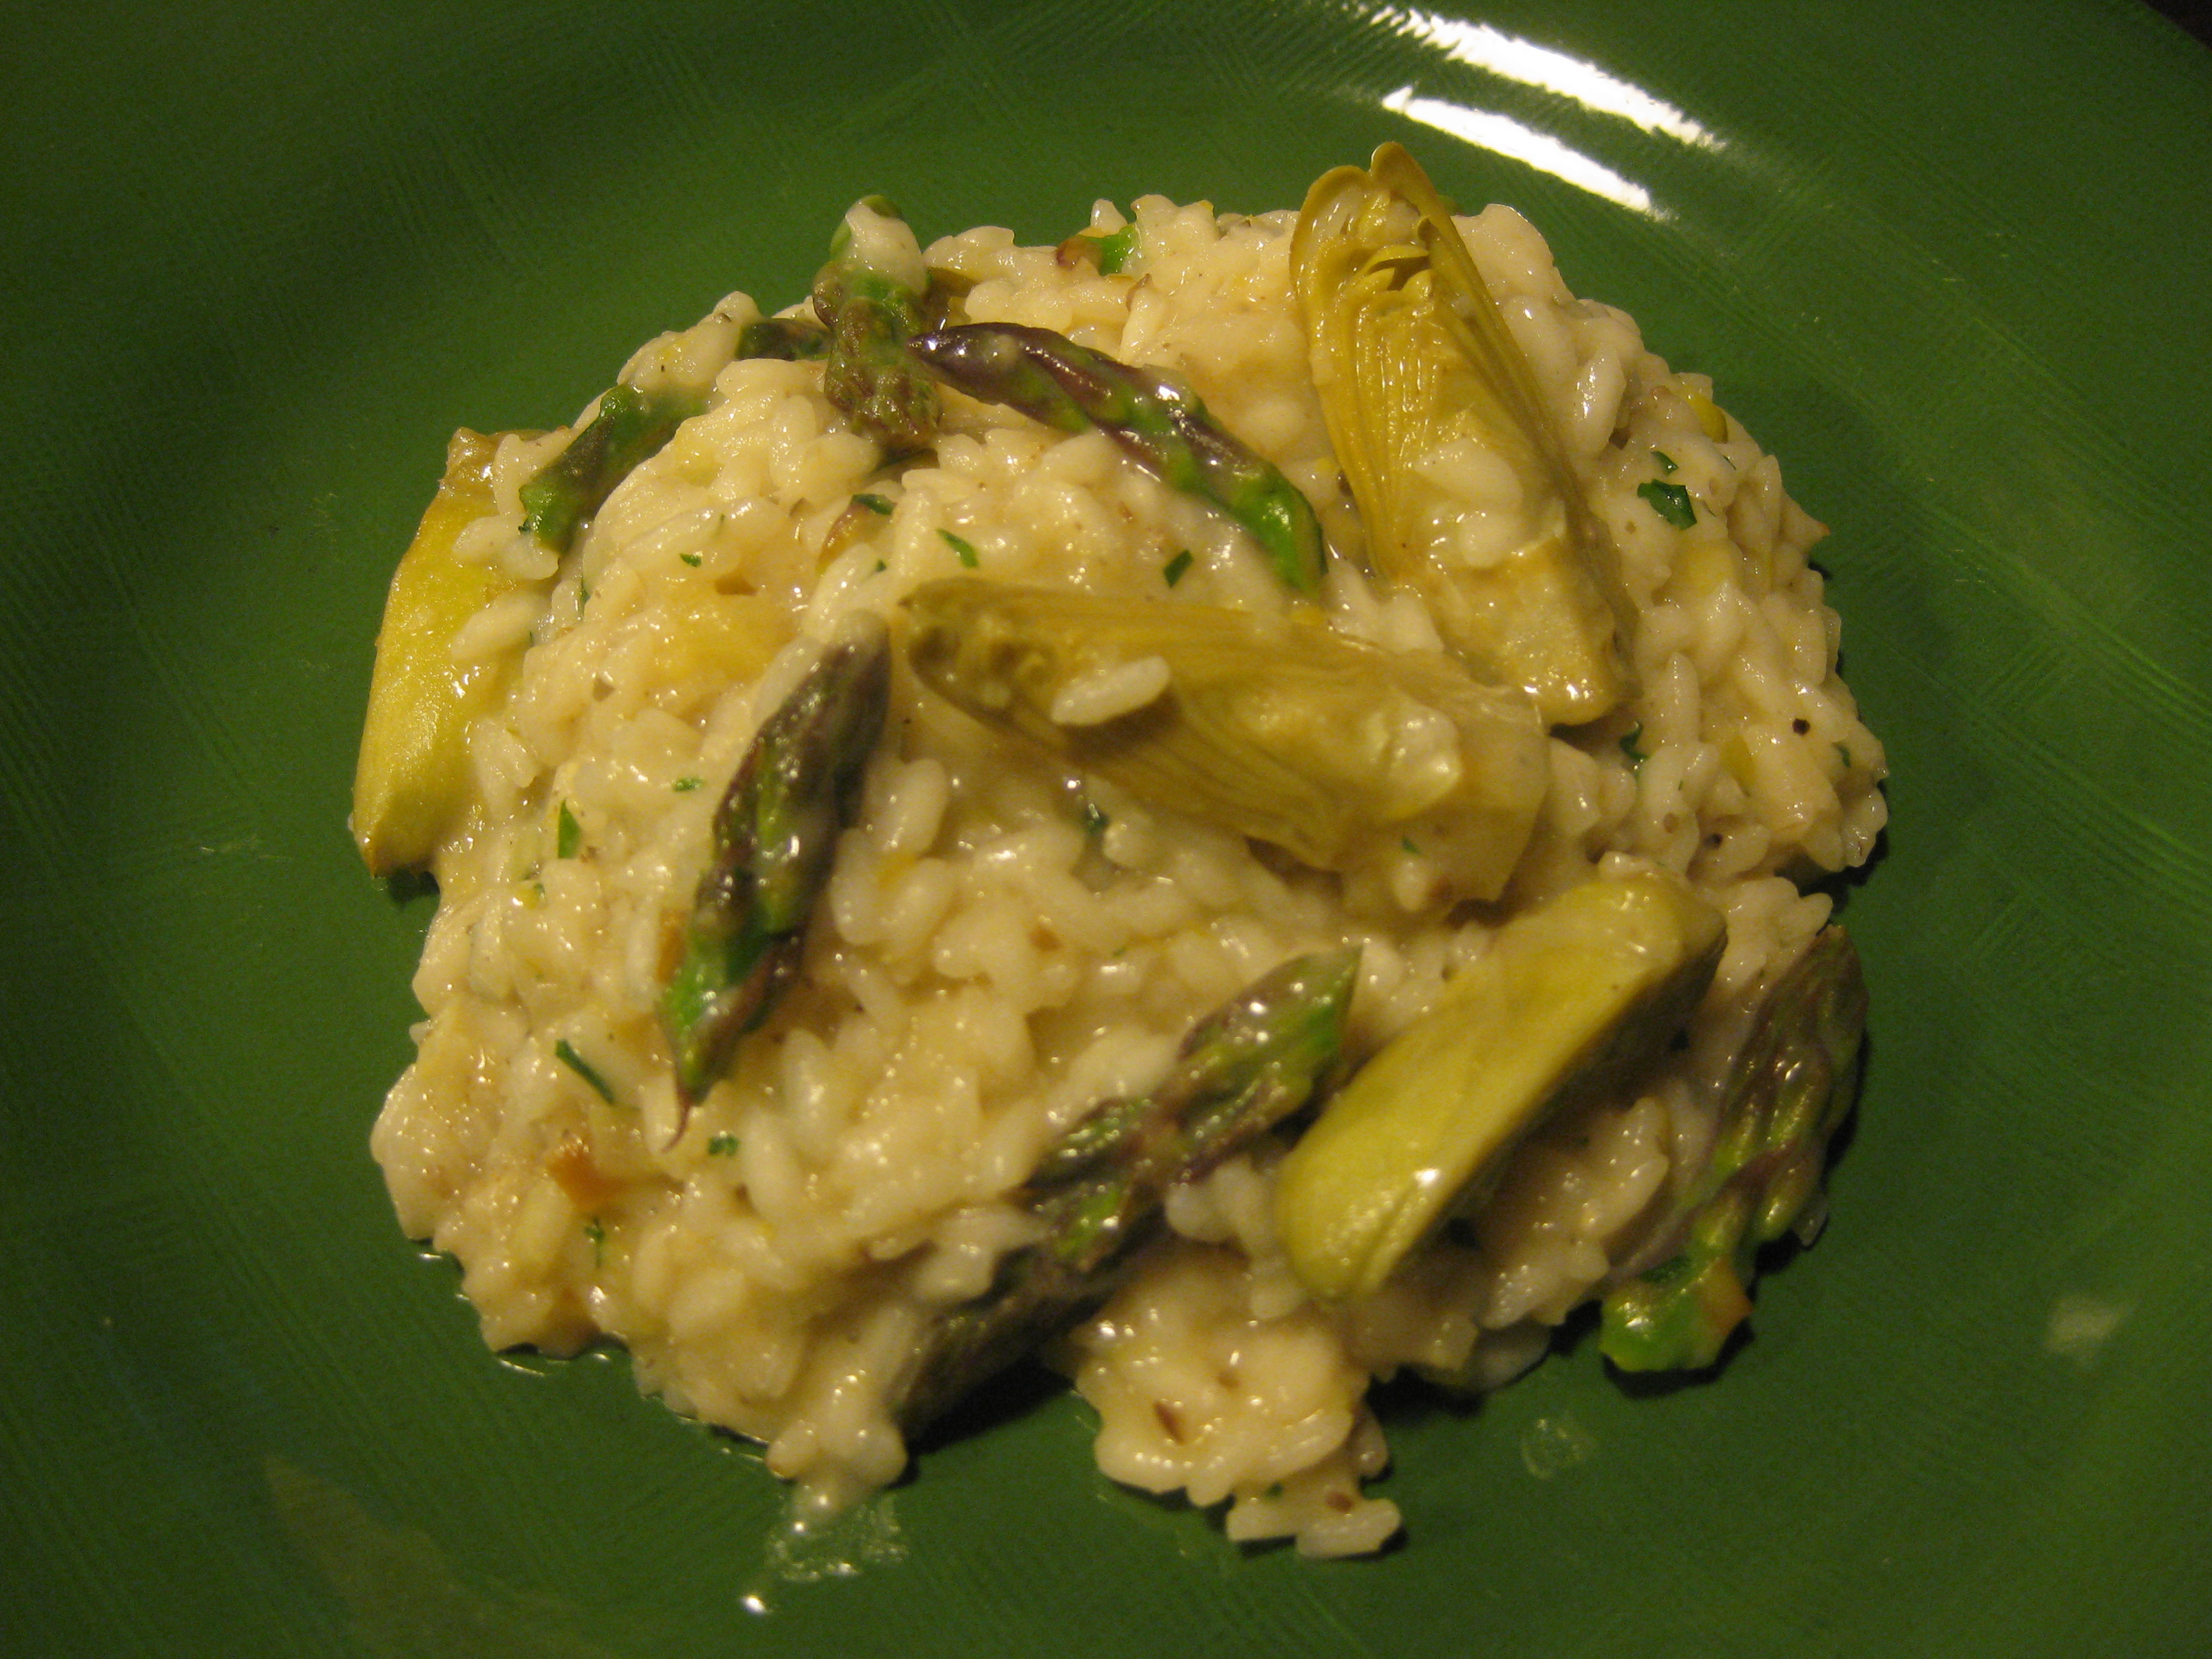 Early Spring Risotto with Fava Beans, Asparagus and Artichokes